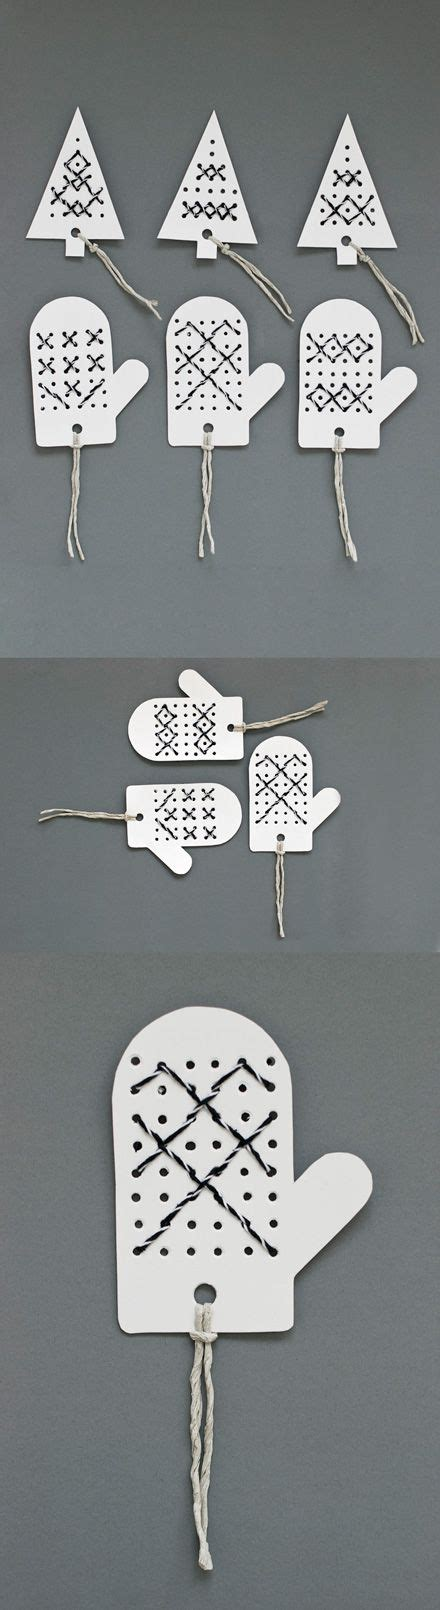 Pre Punched Paper For Crafts - gift tags or toppers made by stitching bakers